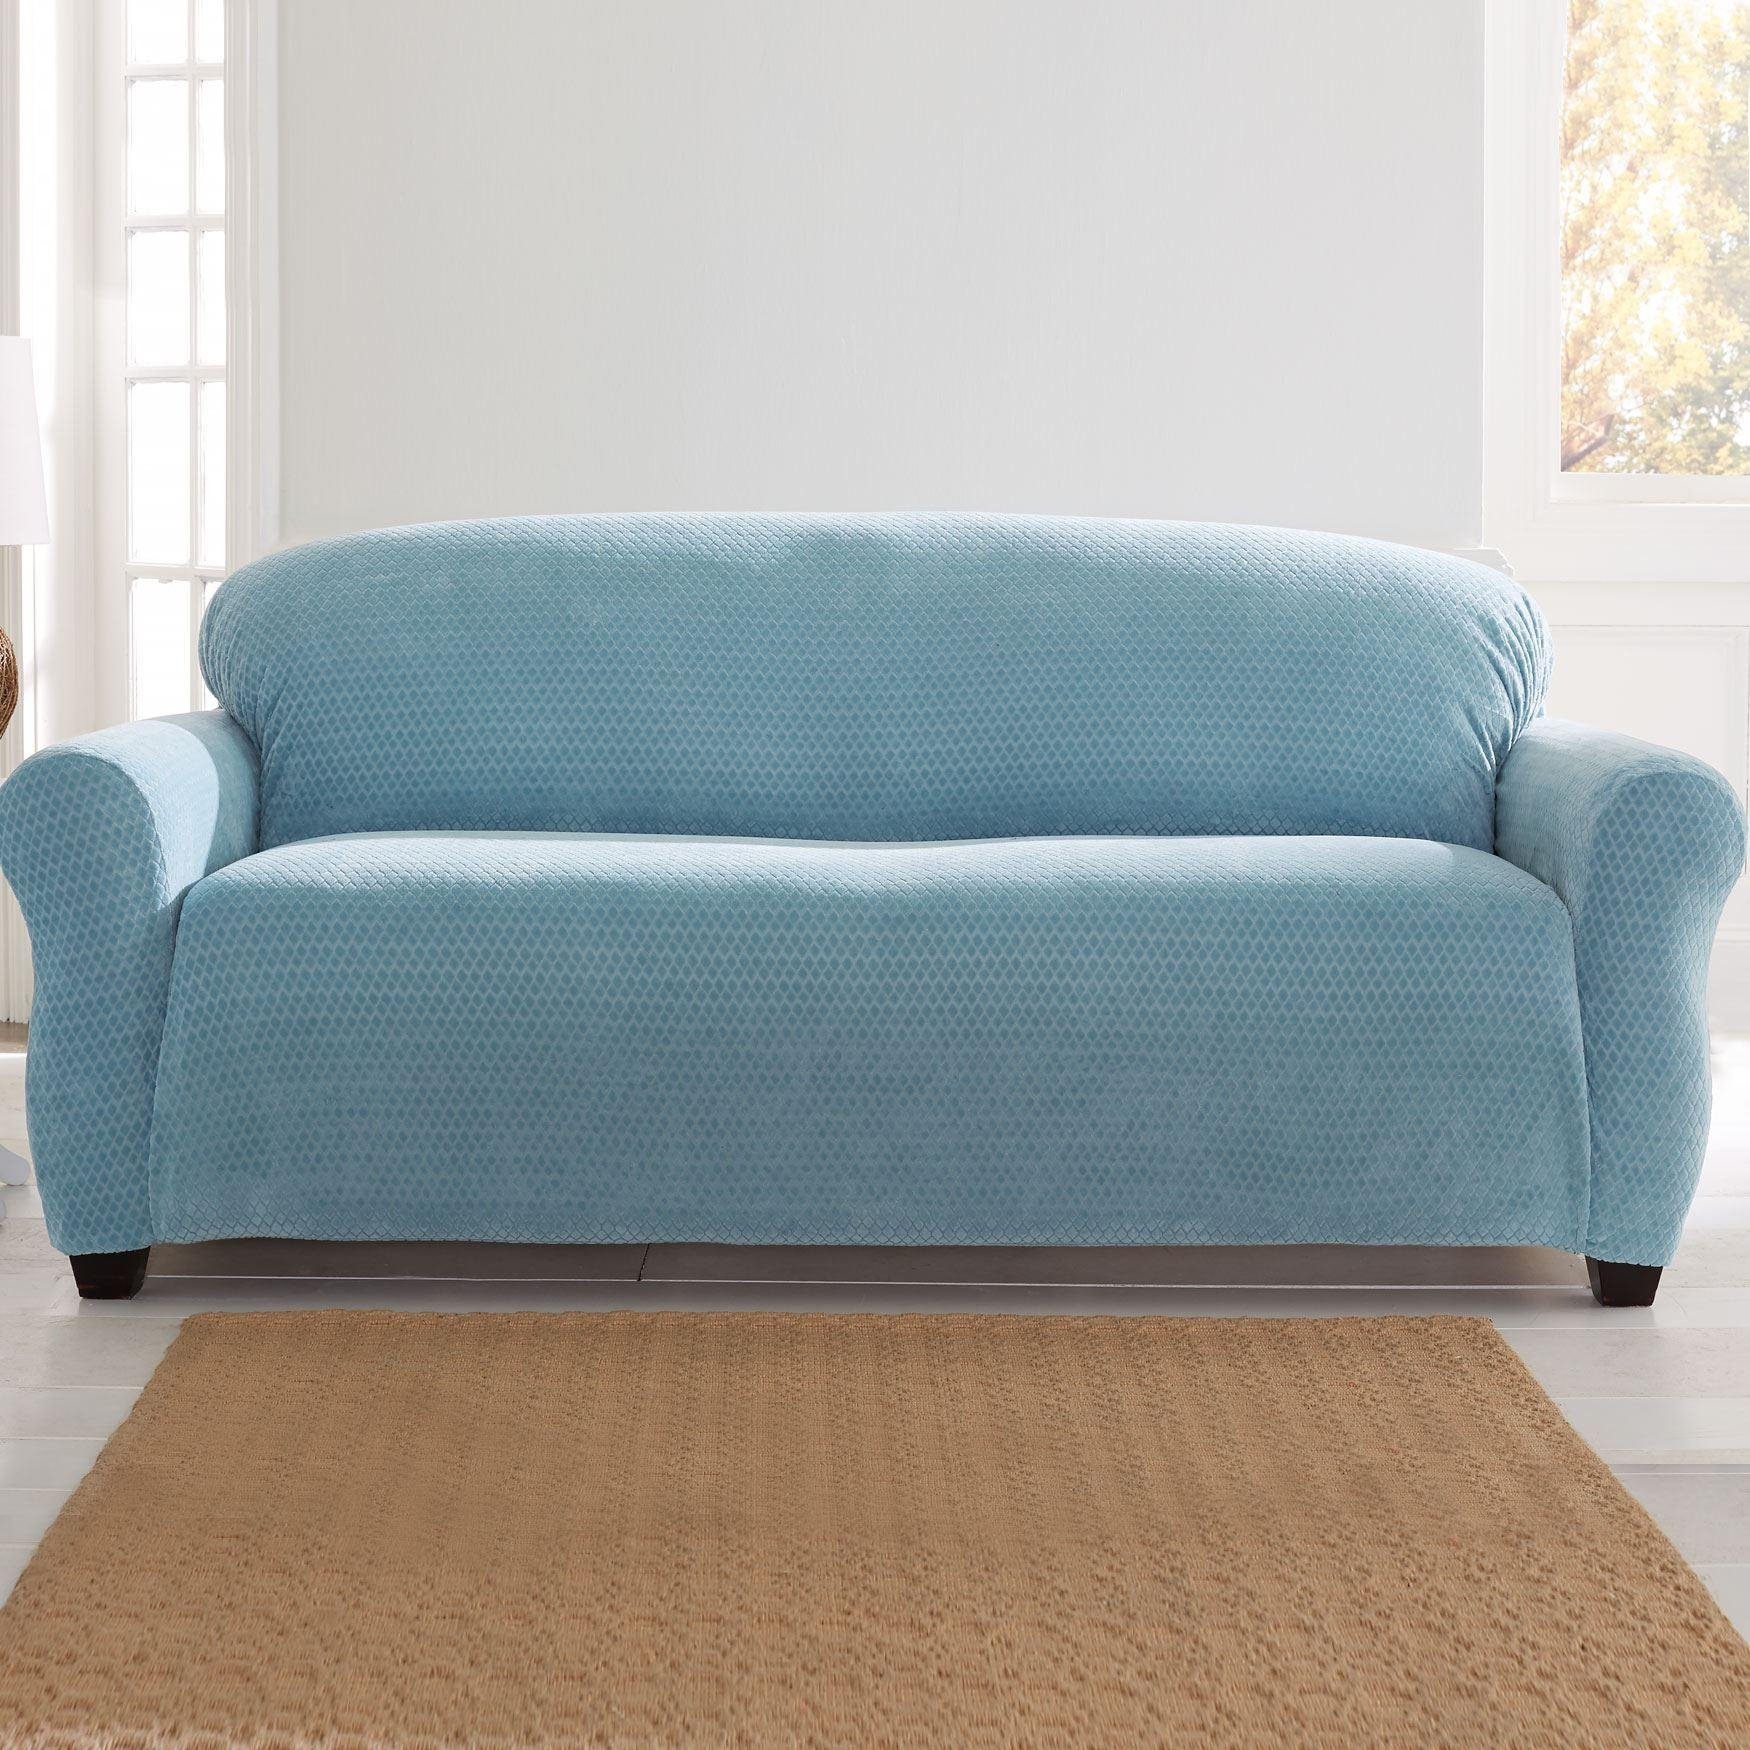 Furniture: Cool Stretch Sofa Covers To Protect And Renew Your Sofa For Teal Sofa Slipcovers (View 3 of 20)